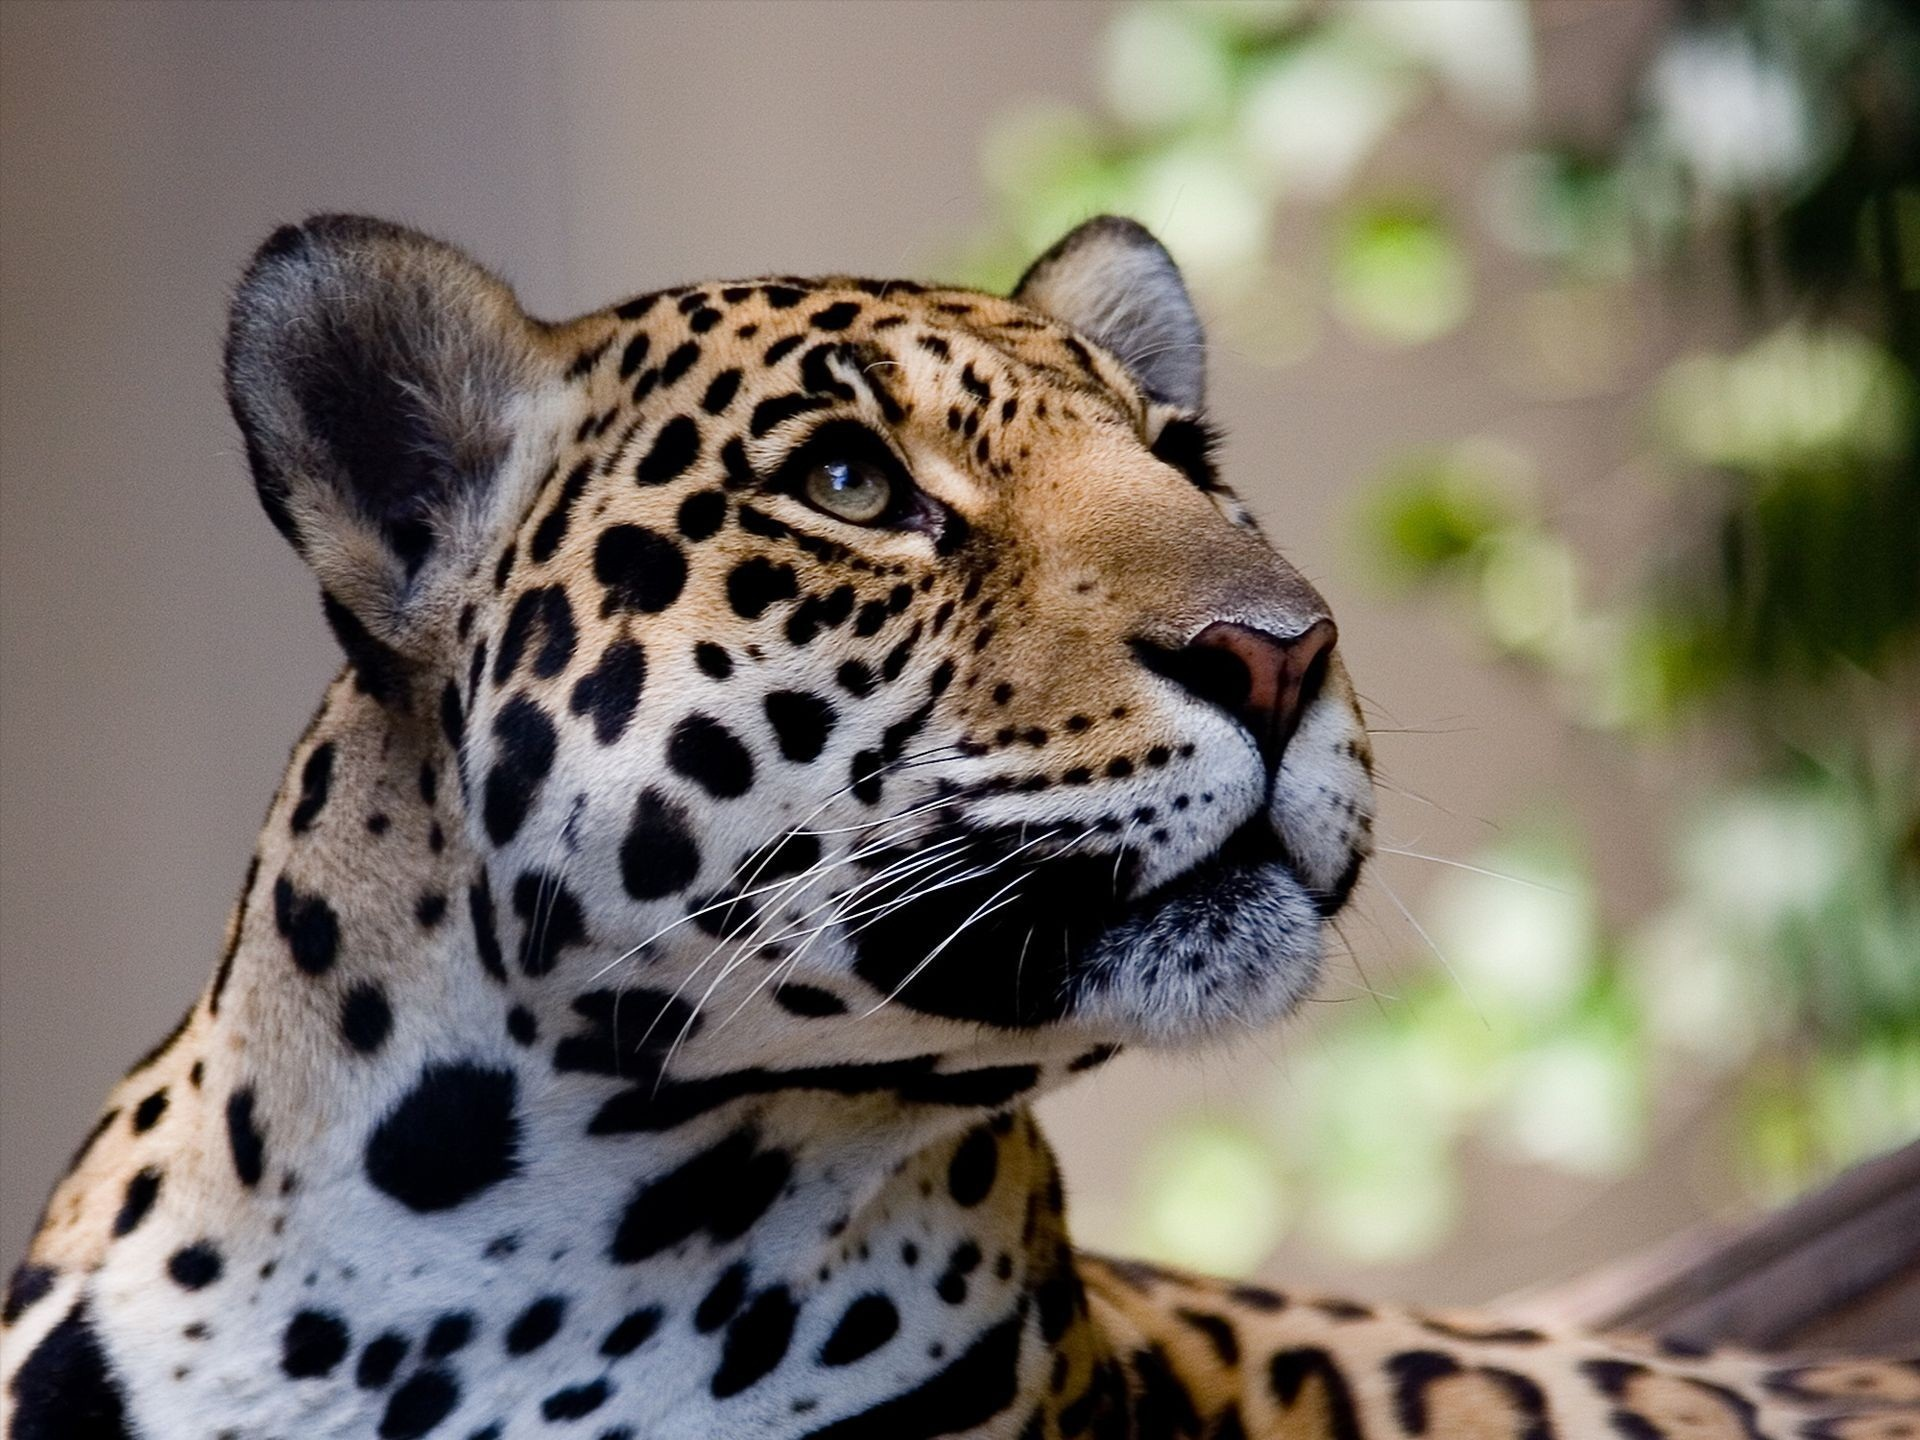 Jaguar 39 s gaze full hd wallpaper and background image - Jaguar animal hd wallpapers ...